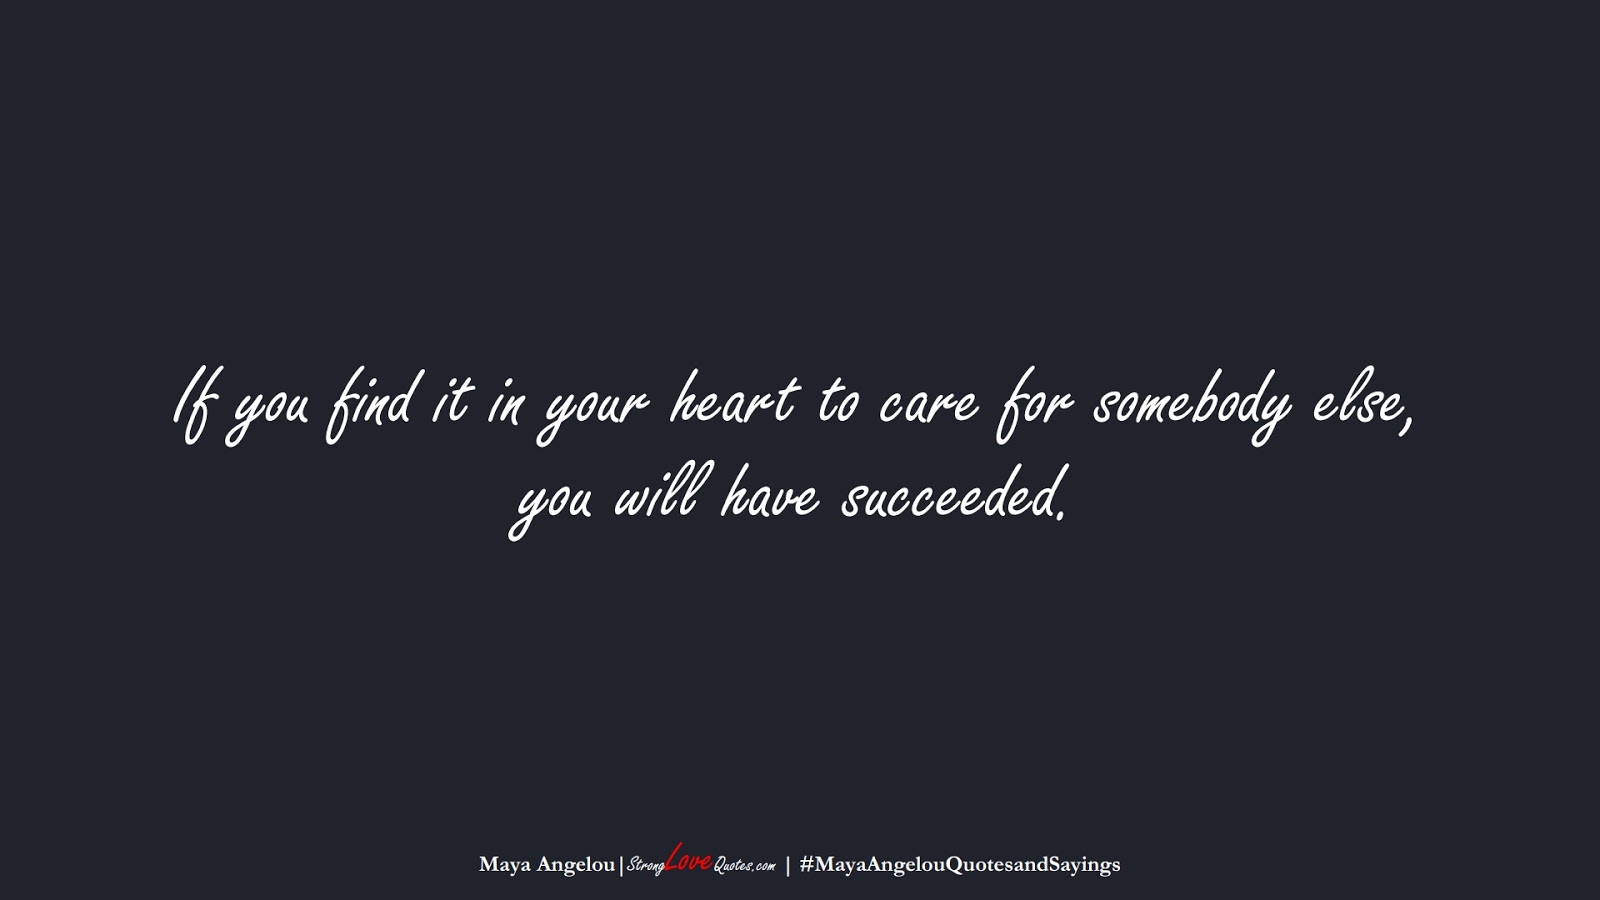 If you find it in your heart to care for somebody else, you will have succeeded. (Maya Angelou);  #MayaAngelouQuotesandSayings